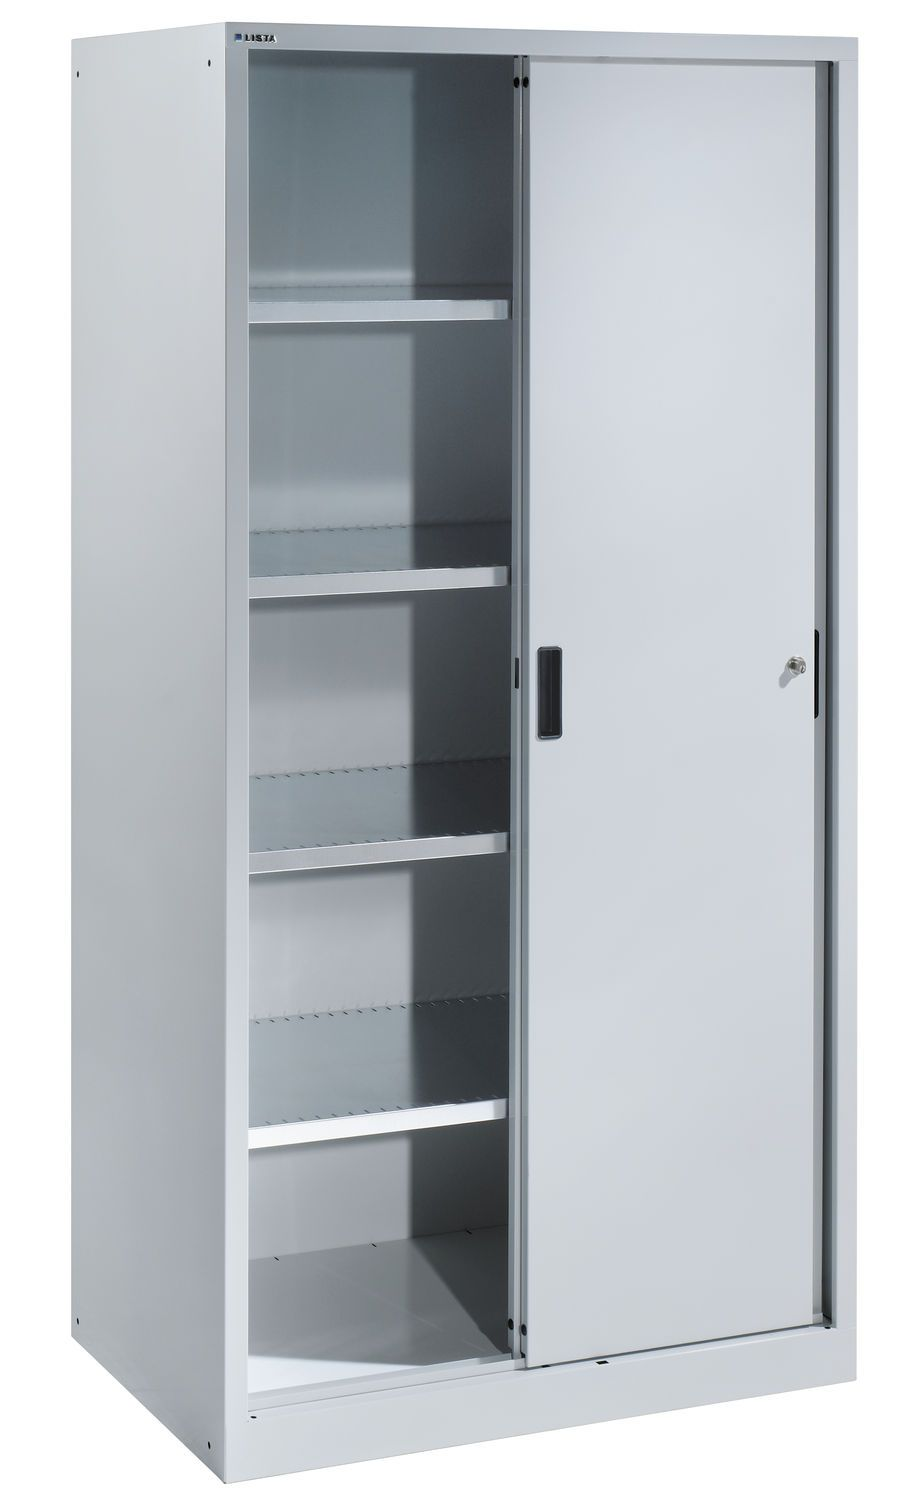 Awe Inspiring Storage Cabinets With Doors Also Adjustable Metal